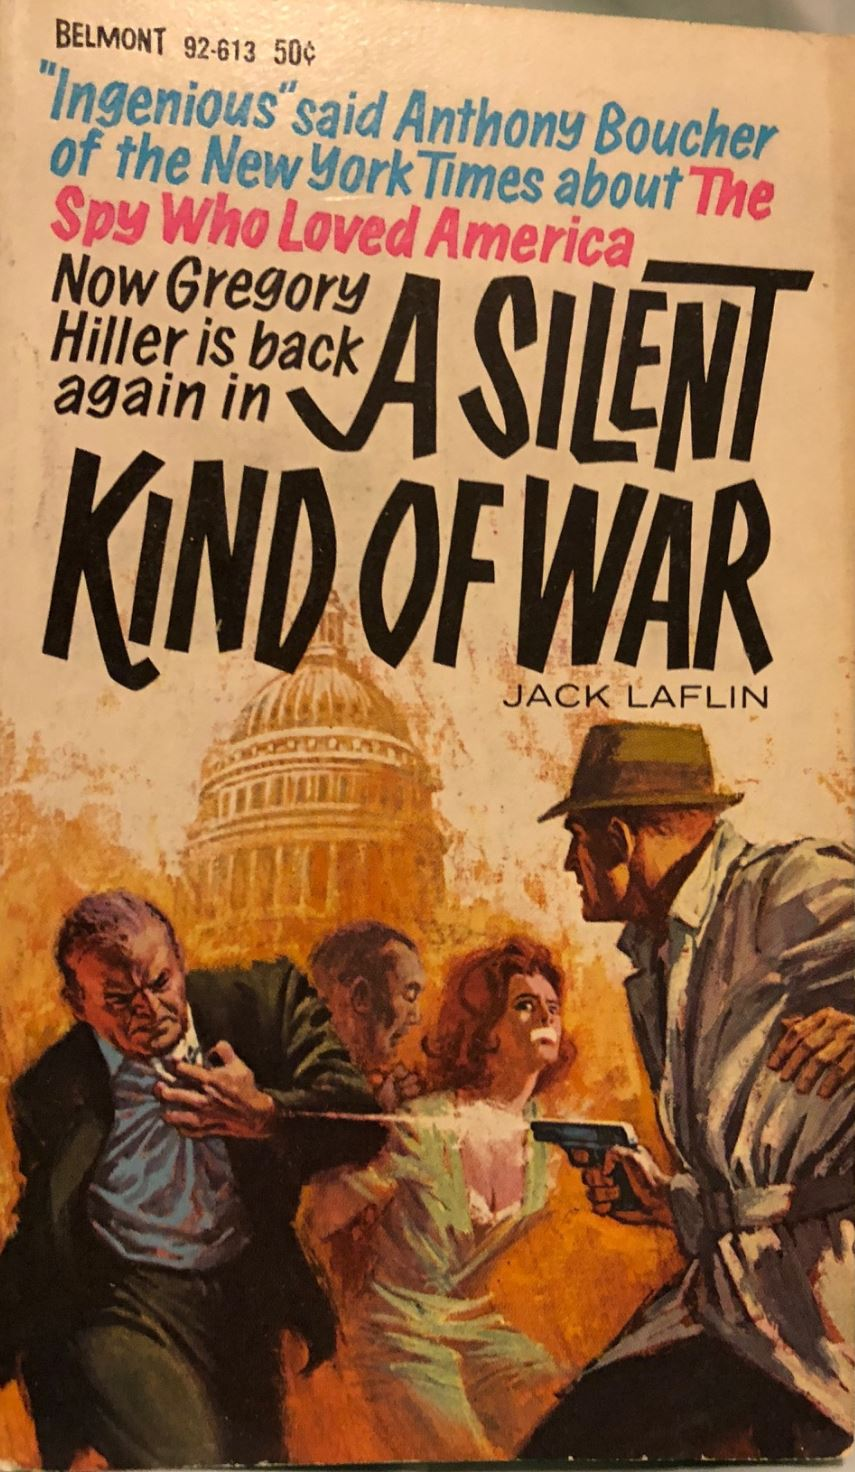 Paperback warrior march 2018 following the success of ian flemings novels nearly every paperback publisher of the 1960s commissioned espionage series novels with varying results fandeluxe Choice Image